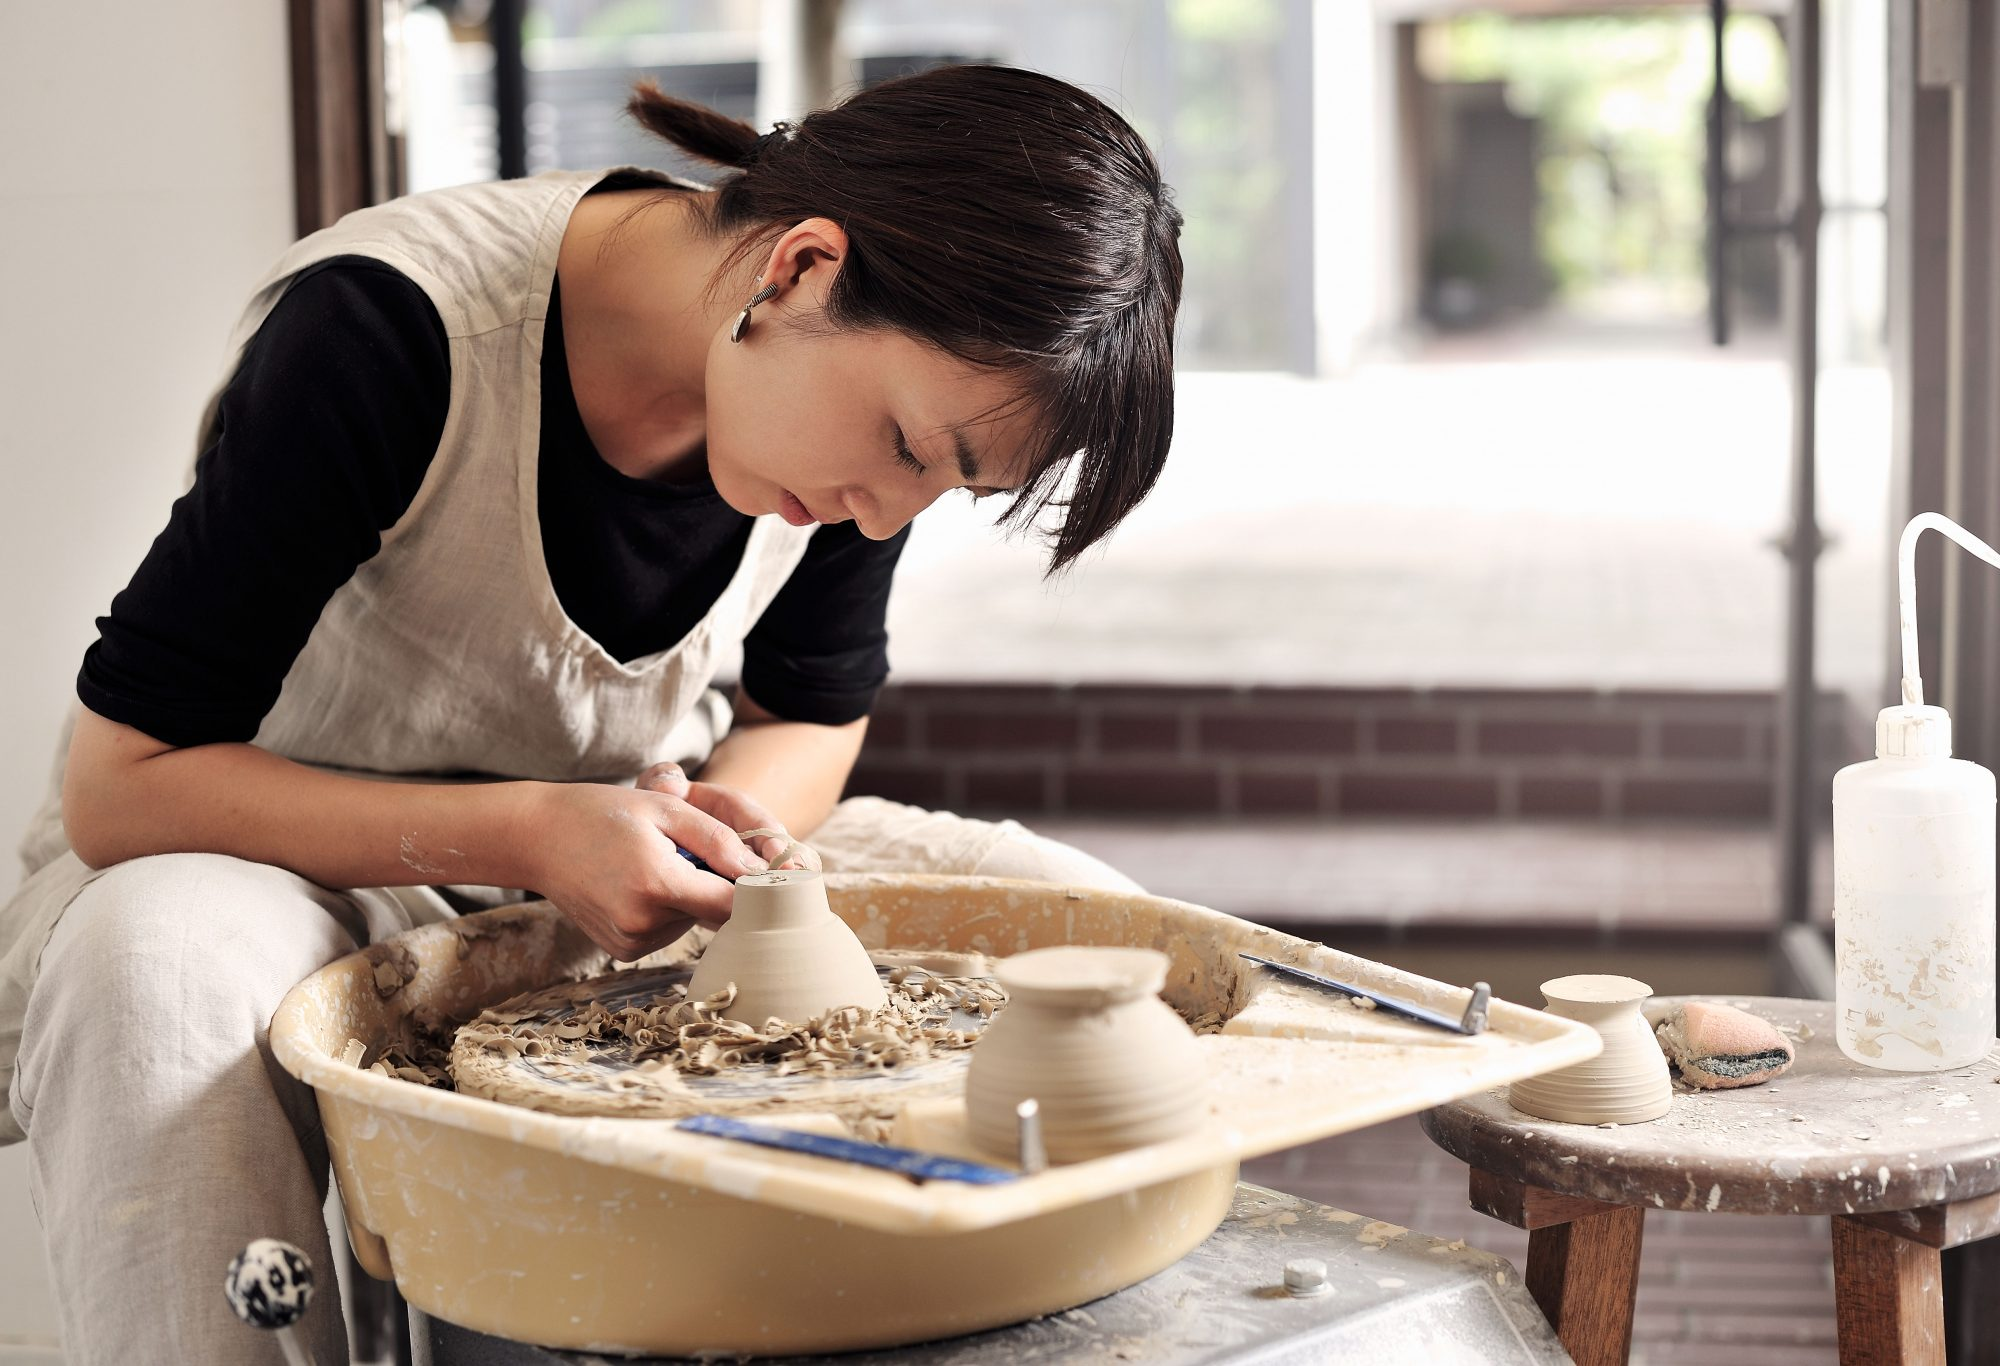 Potter are making a bowl in the studio